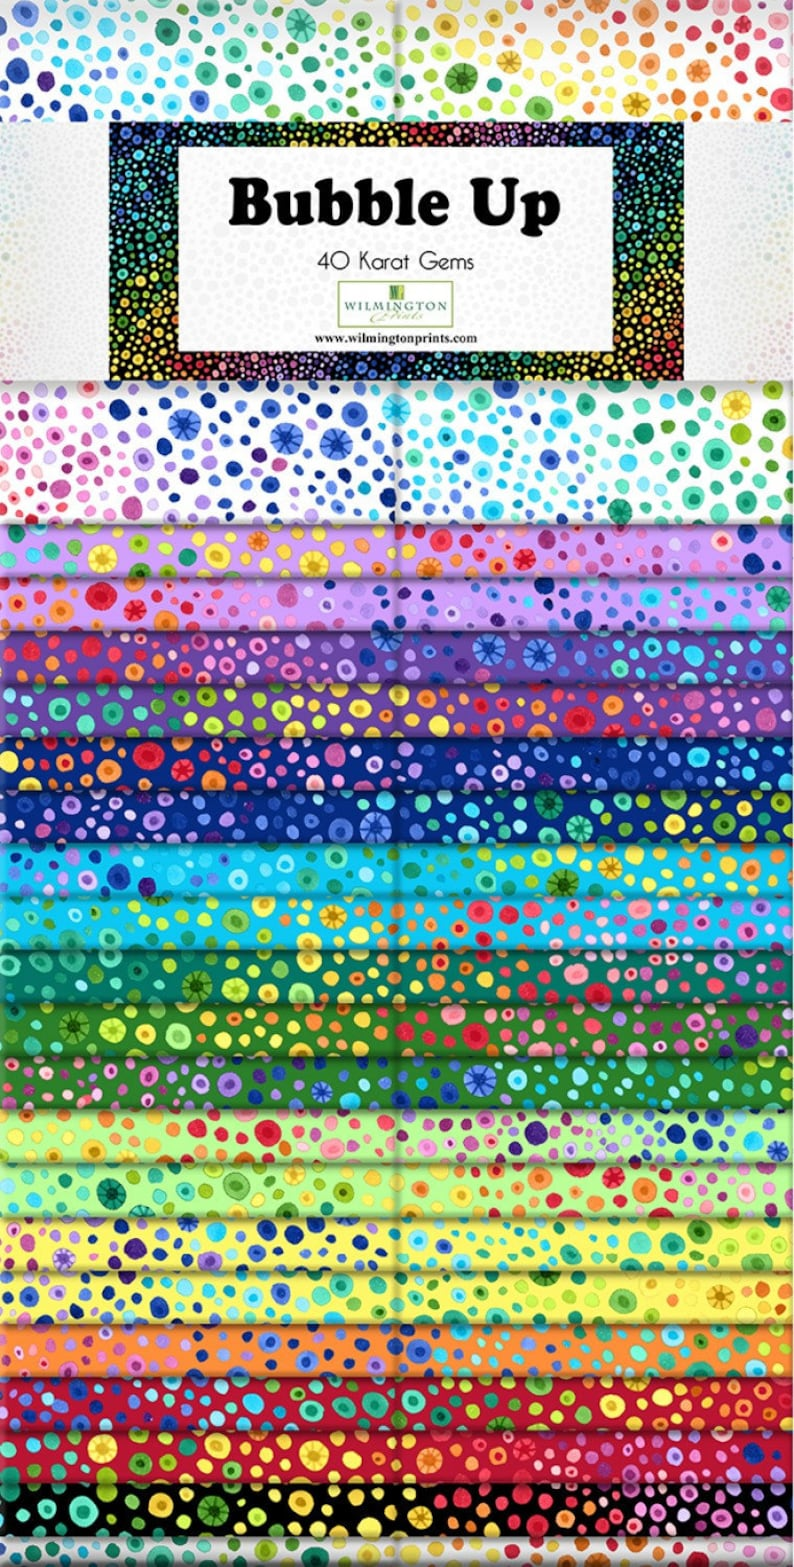 BUBBLE UP Jelly Roll Wilmington fabric 40 2.5 inch strips rainbow dots circles q842-51-842